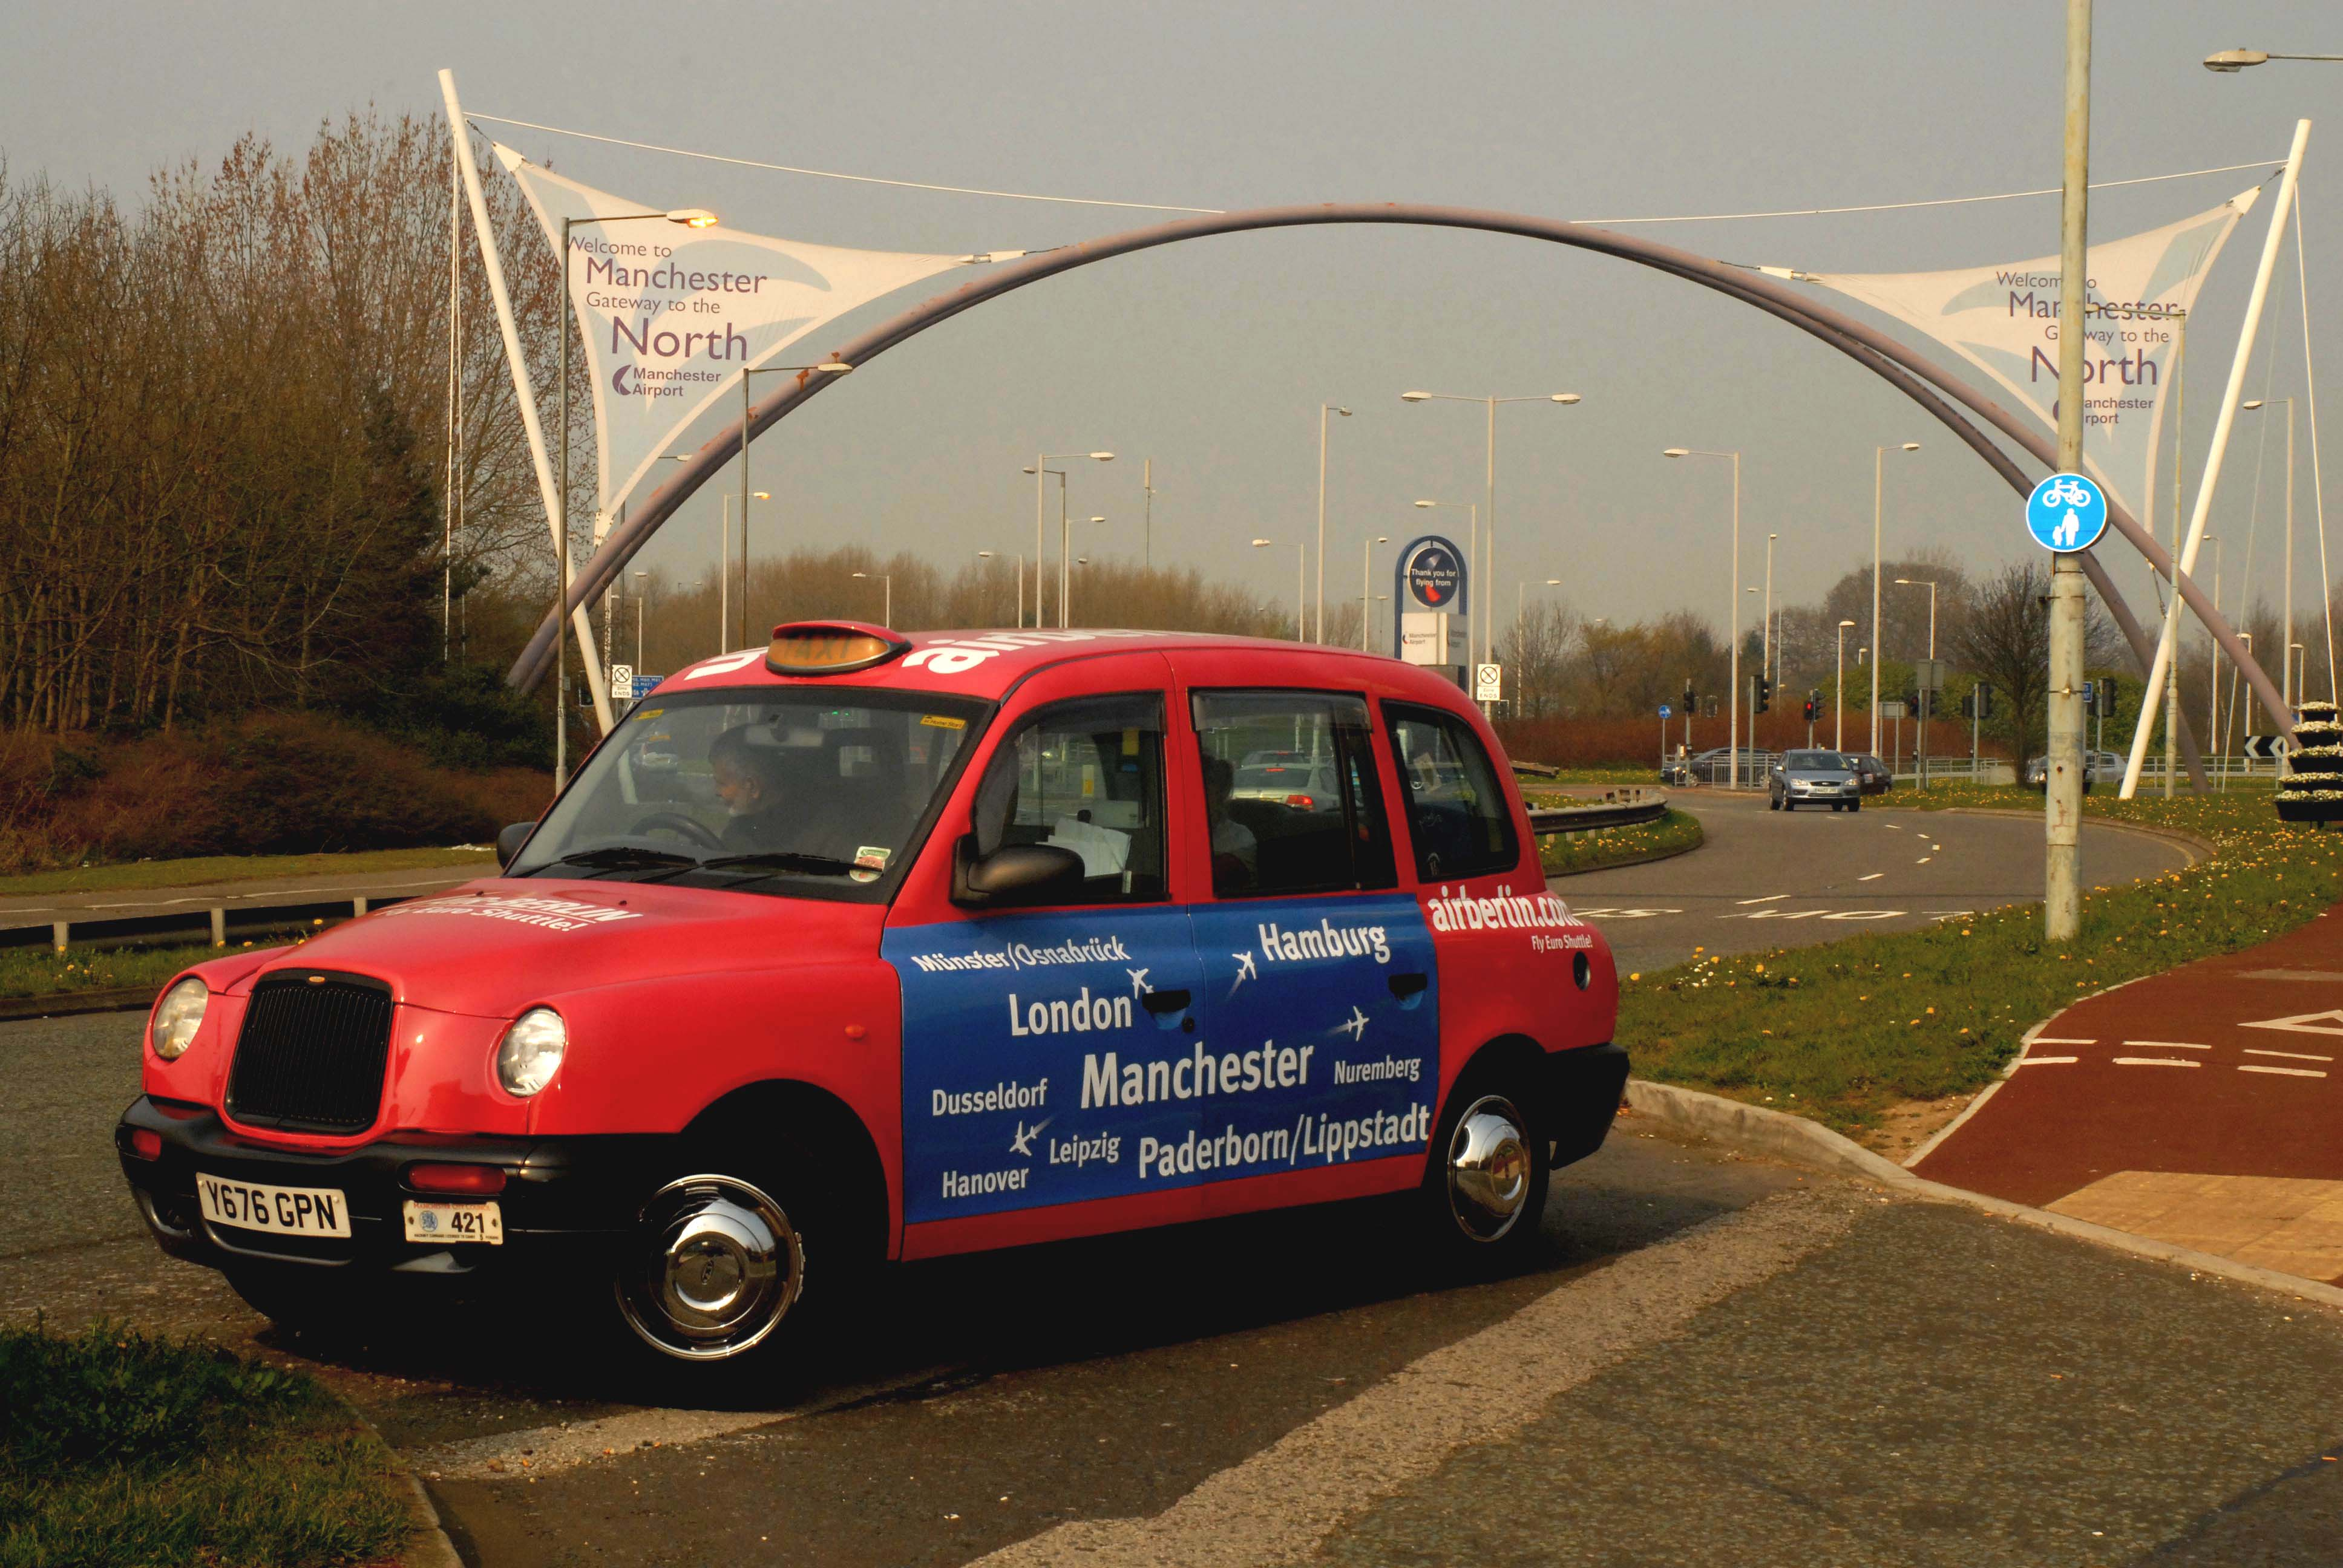 2007 Ubiquitous taxi advertising campaign for Manchester Airport - Air Berlin.com - London - Manchester